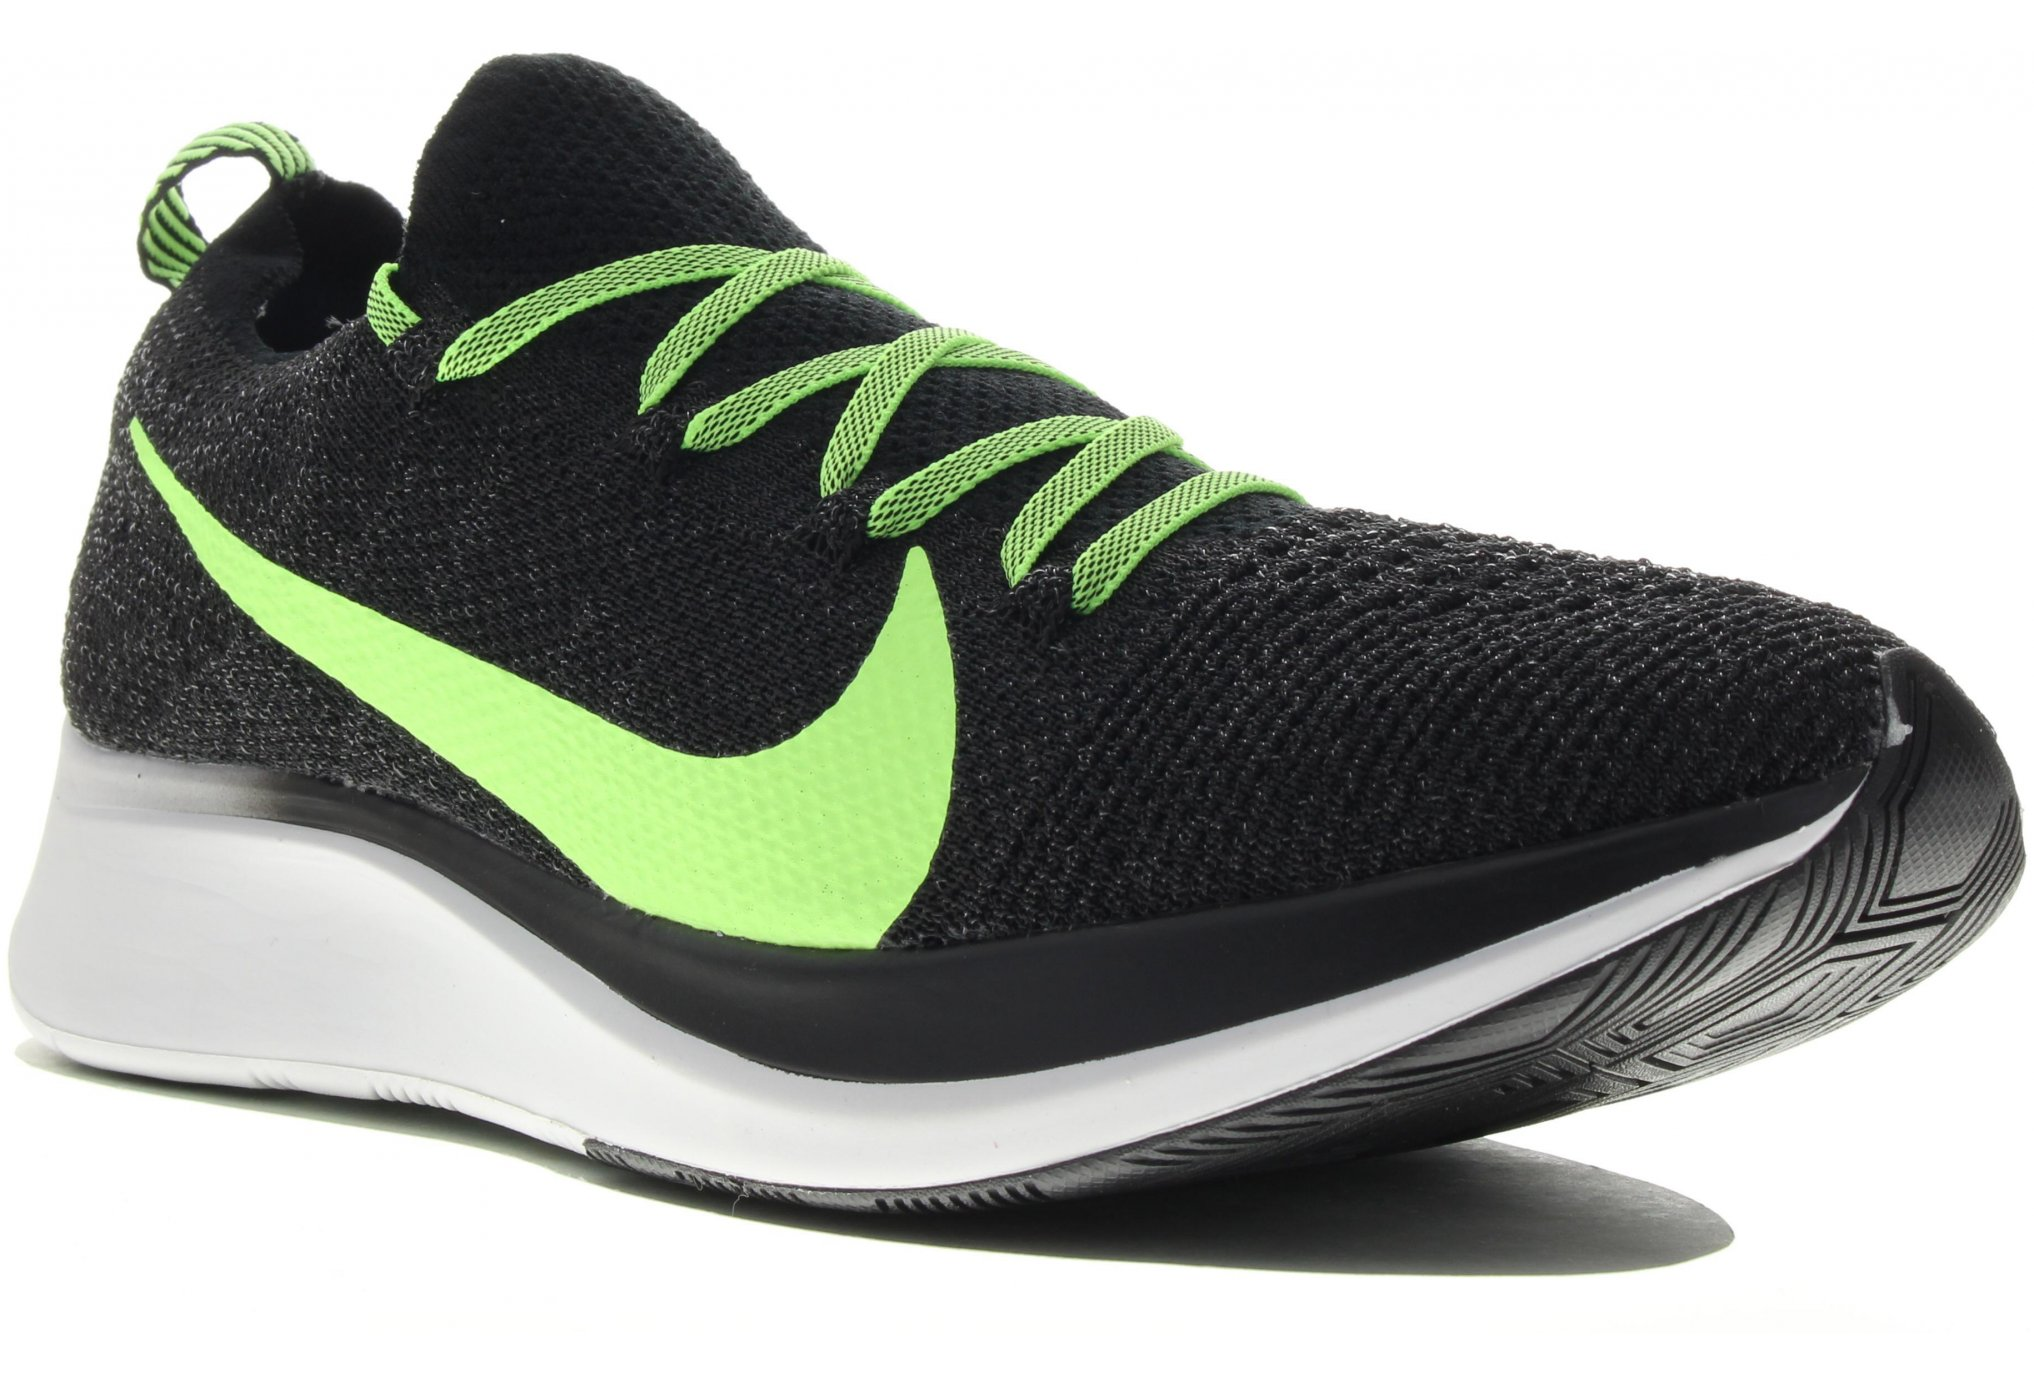 Nike Zoom Fly Flyknit Chaussures homme